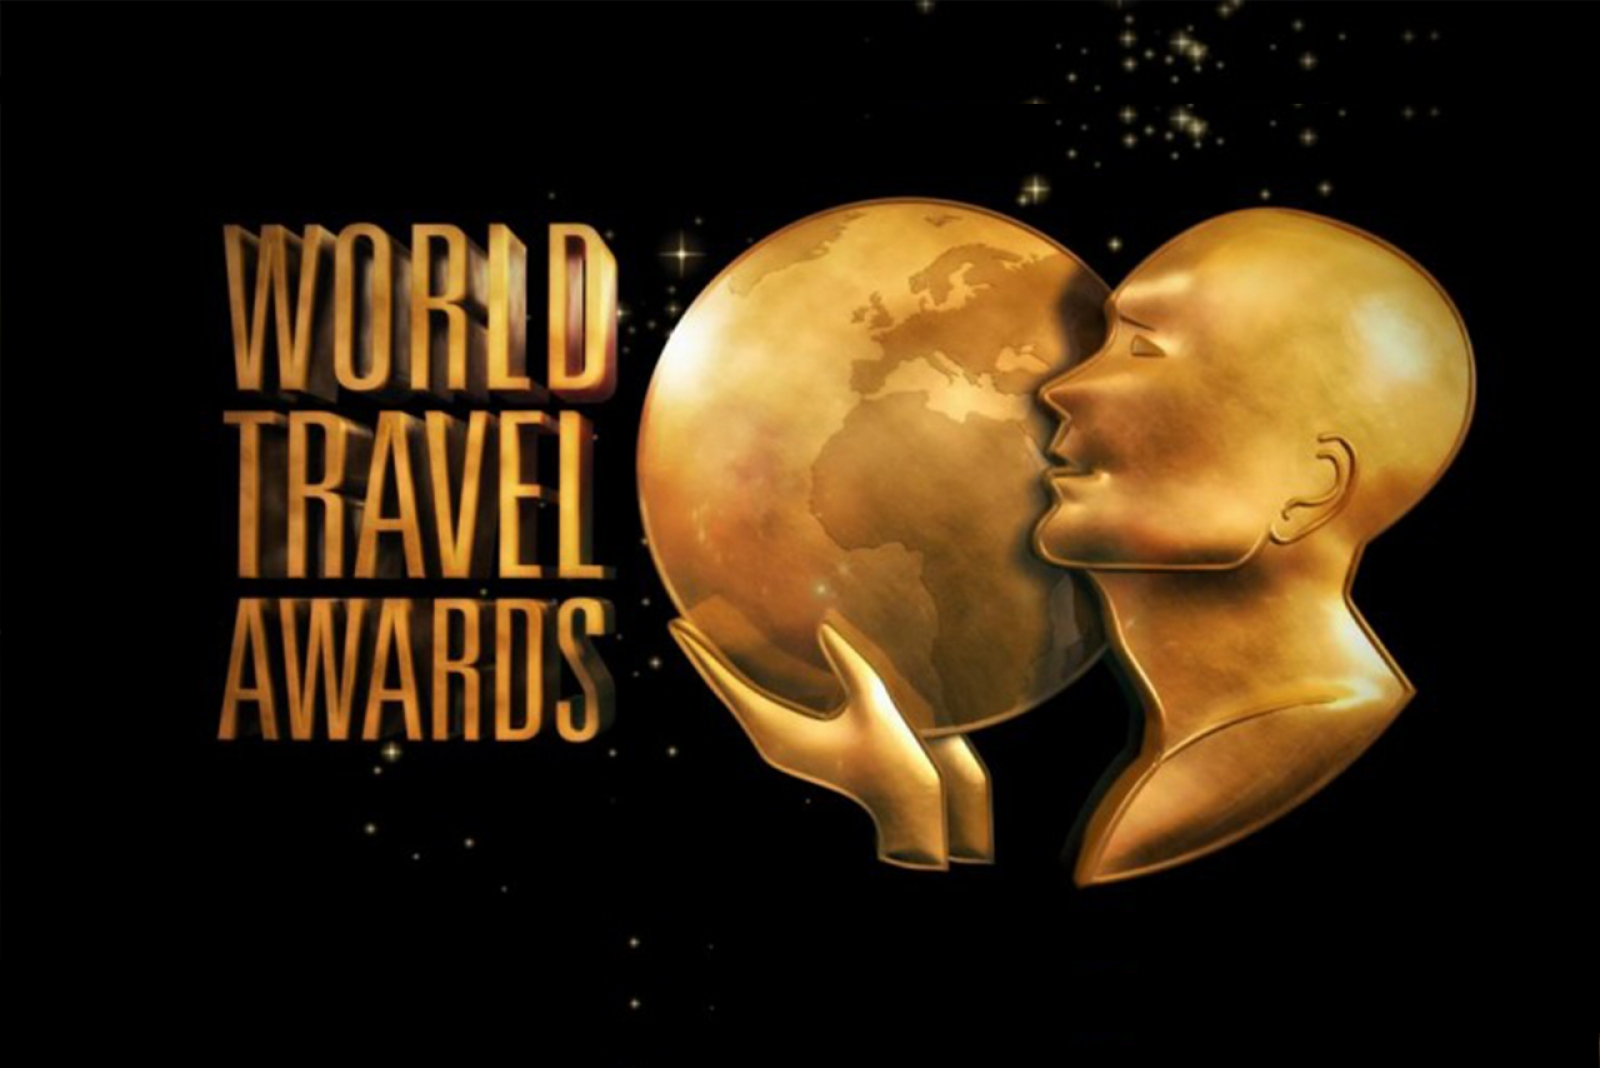 Madeira Wins Europe's Best Insular Destination Award Attributed by World Travels Awards